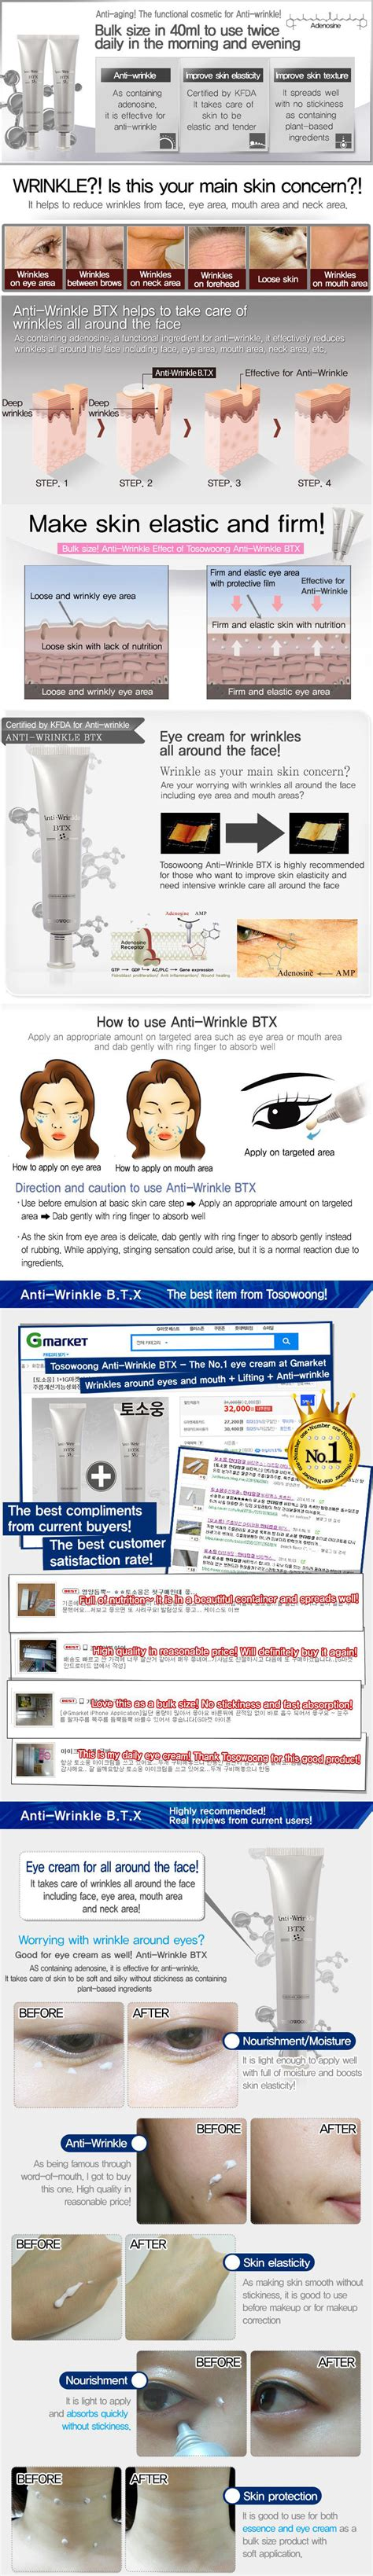 tosowoong anti wrinkle btx 40ml tosowoong anti wrinkle btx 40ml